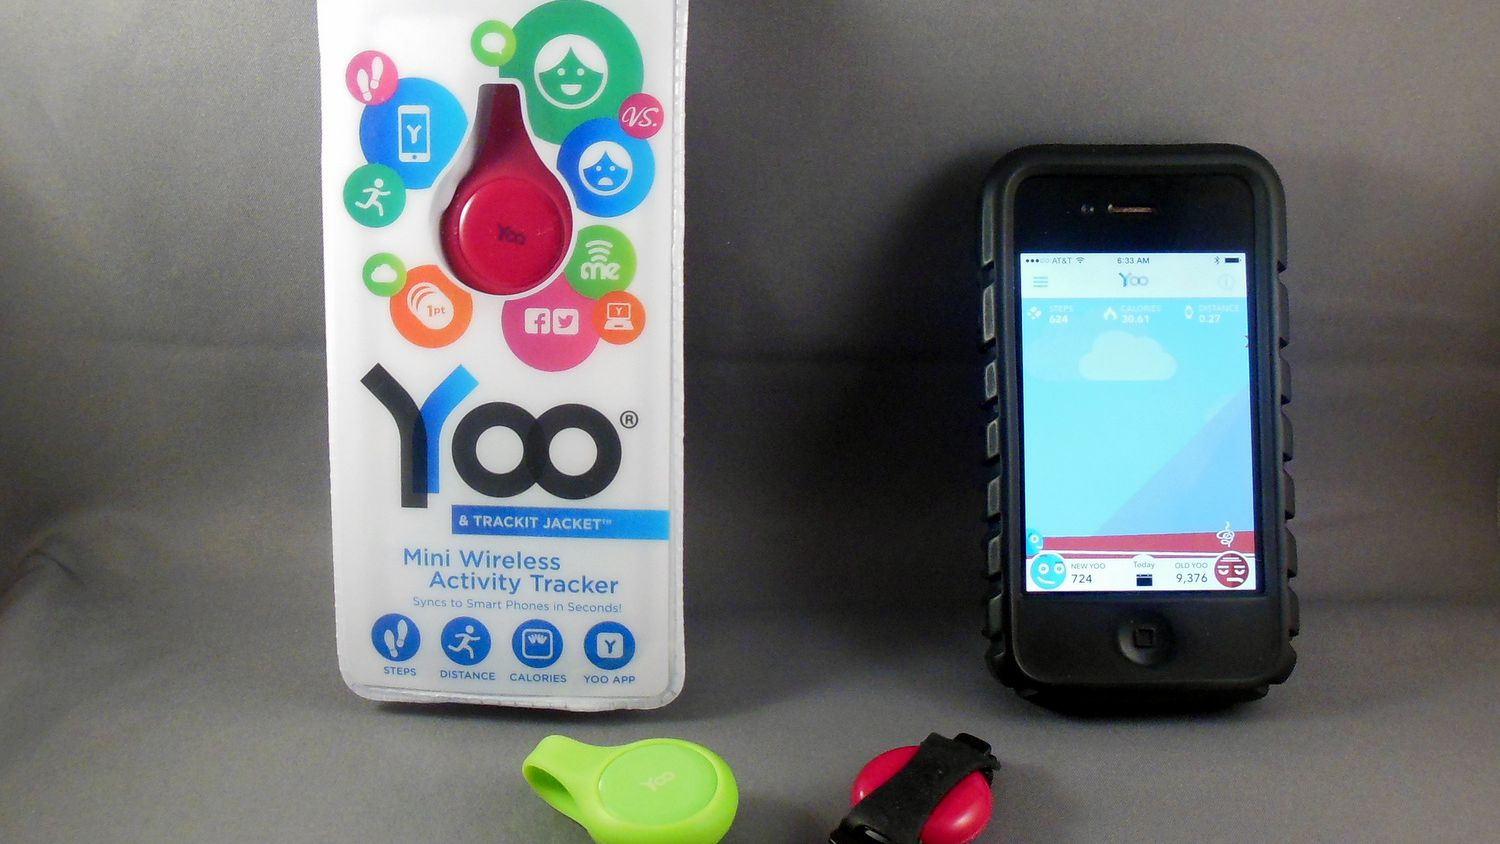 Yoo Mini Wireless Activity Tracker Review